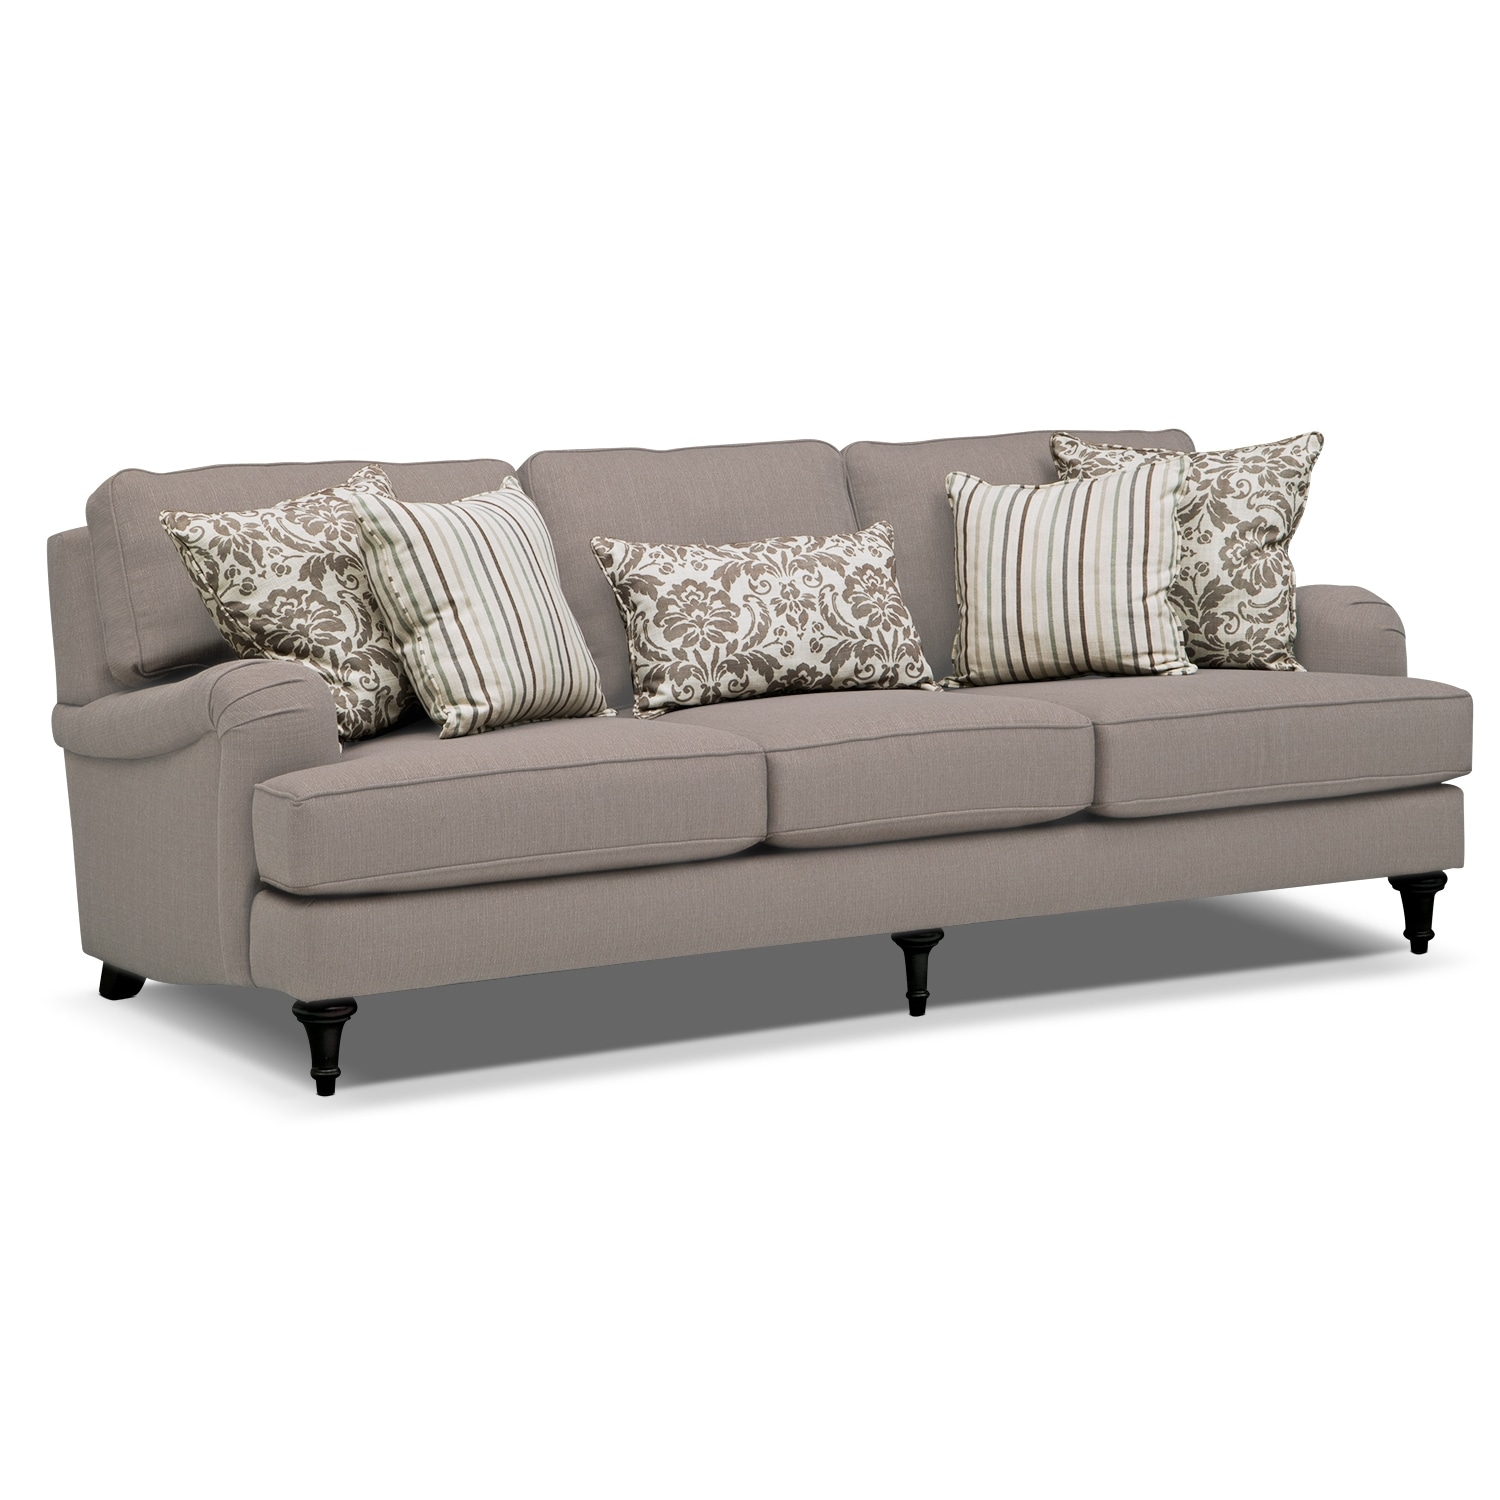 Http Www Valuecityfurniture Com Product Item Living Room Seating Sofas Candice Sofa 1651212 1610552